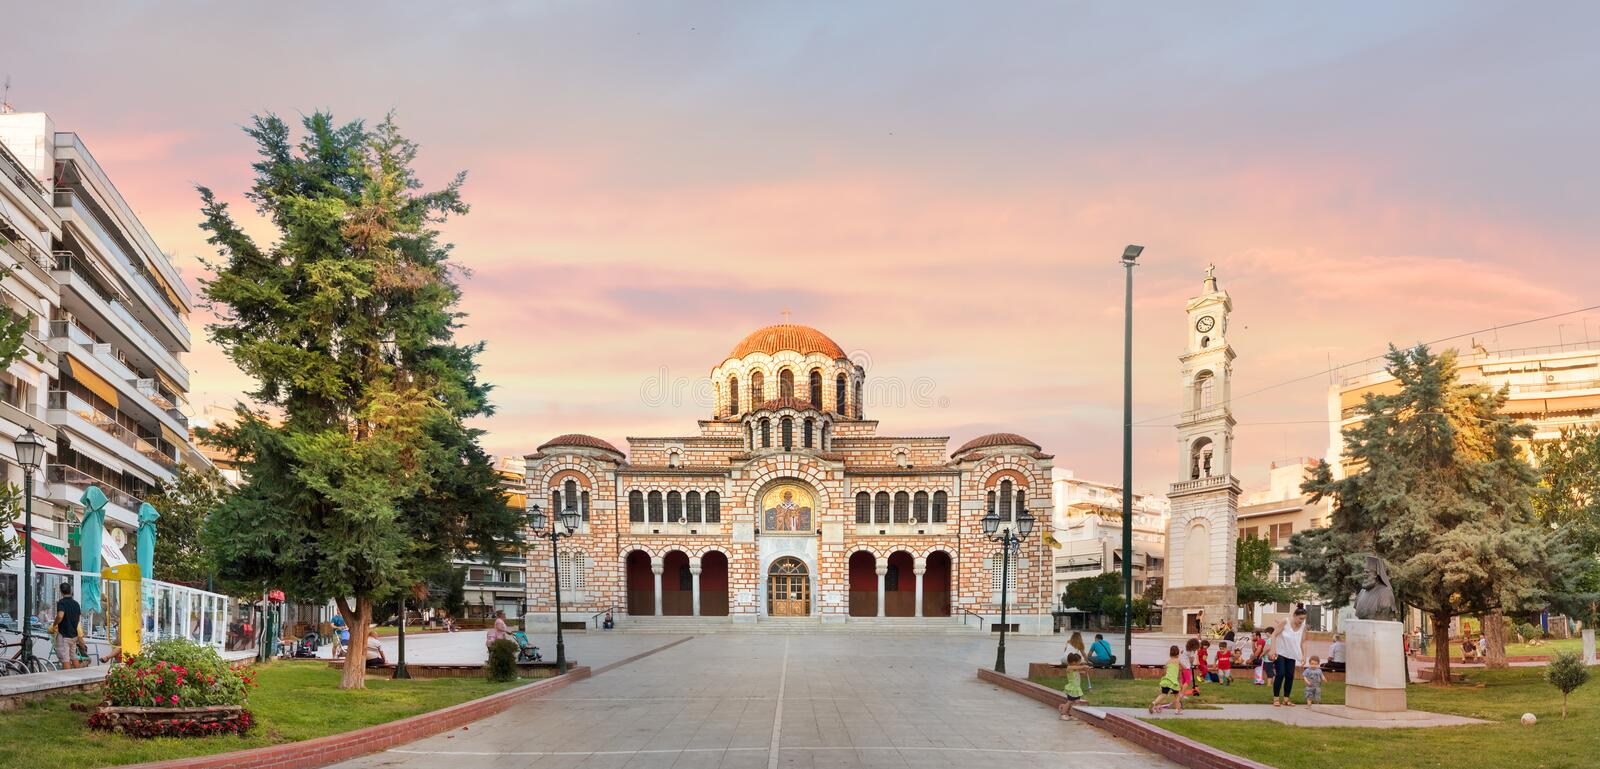 Cathedral Church of St. Nicholas in Volos, Greece. royalty free stock image